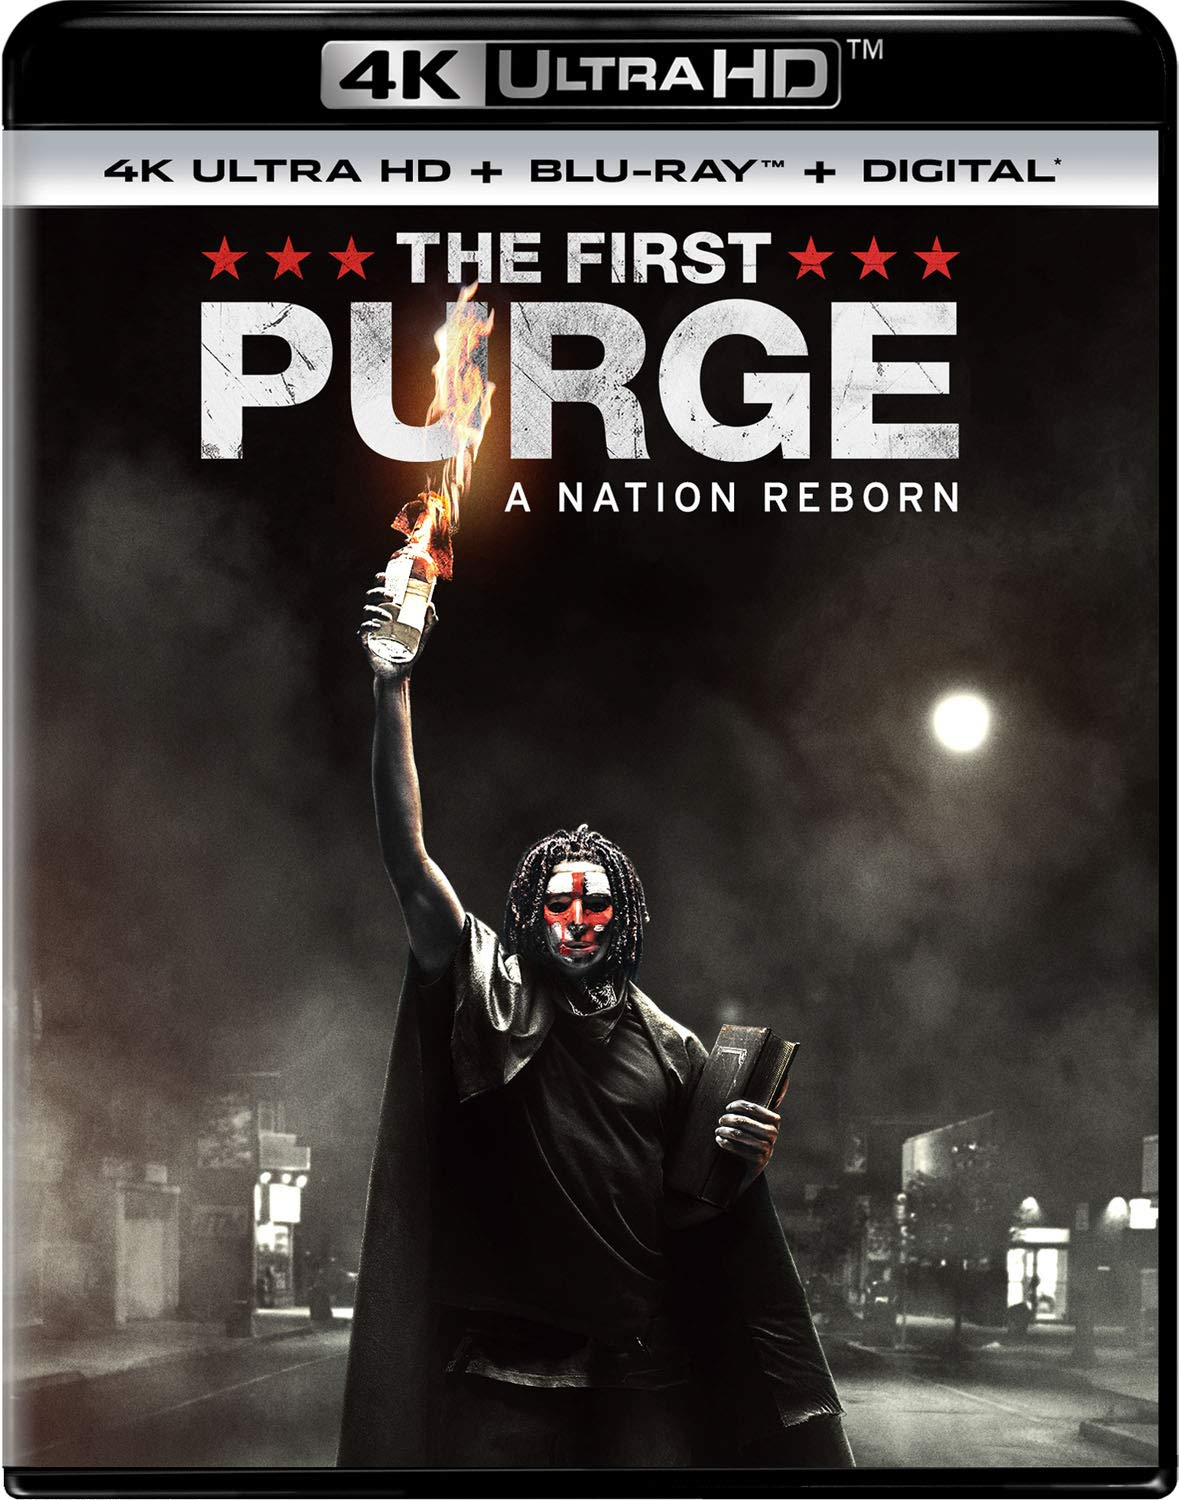 4K Blu-ray : The First Purge (With Blu-ray, 4K Mastering, Digital Copy, 2 Pack, 2PC)